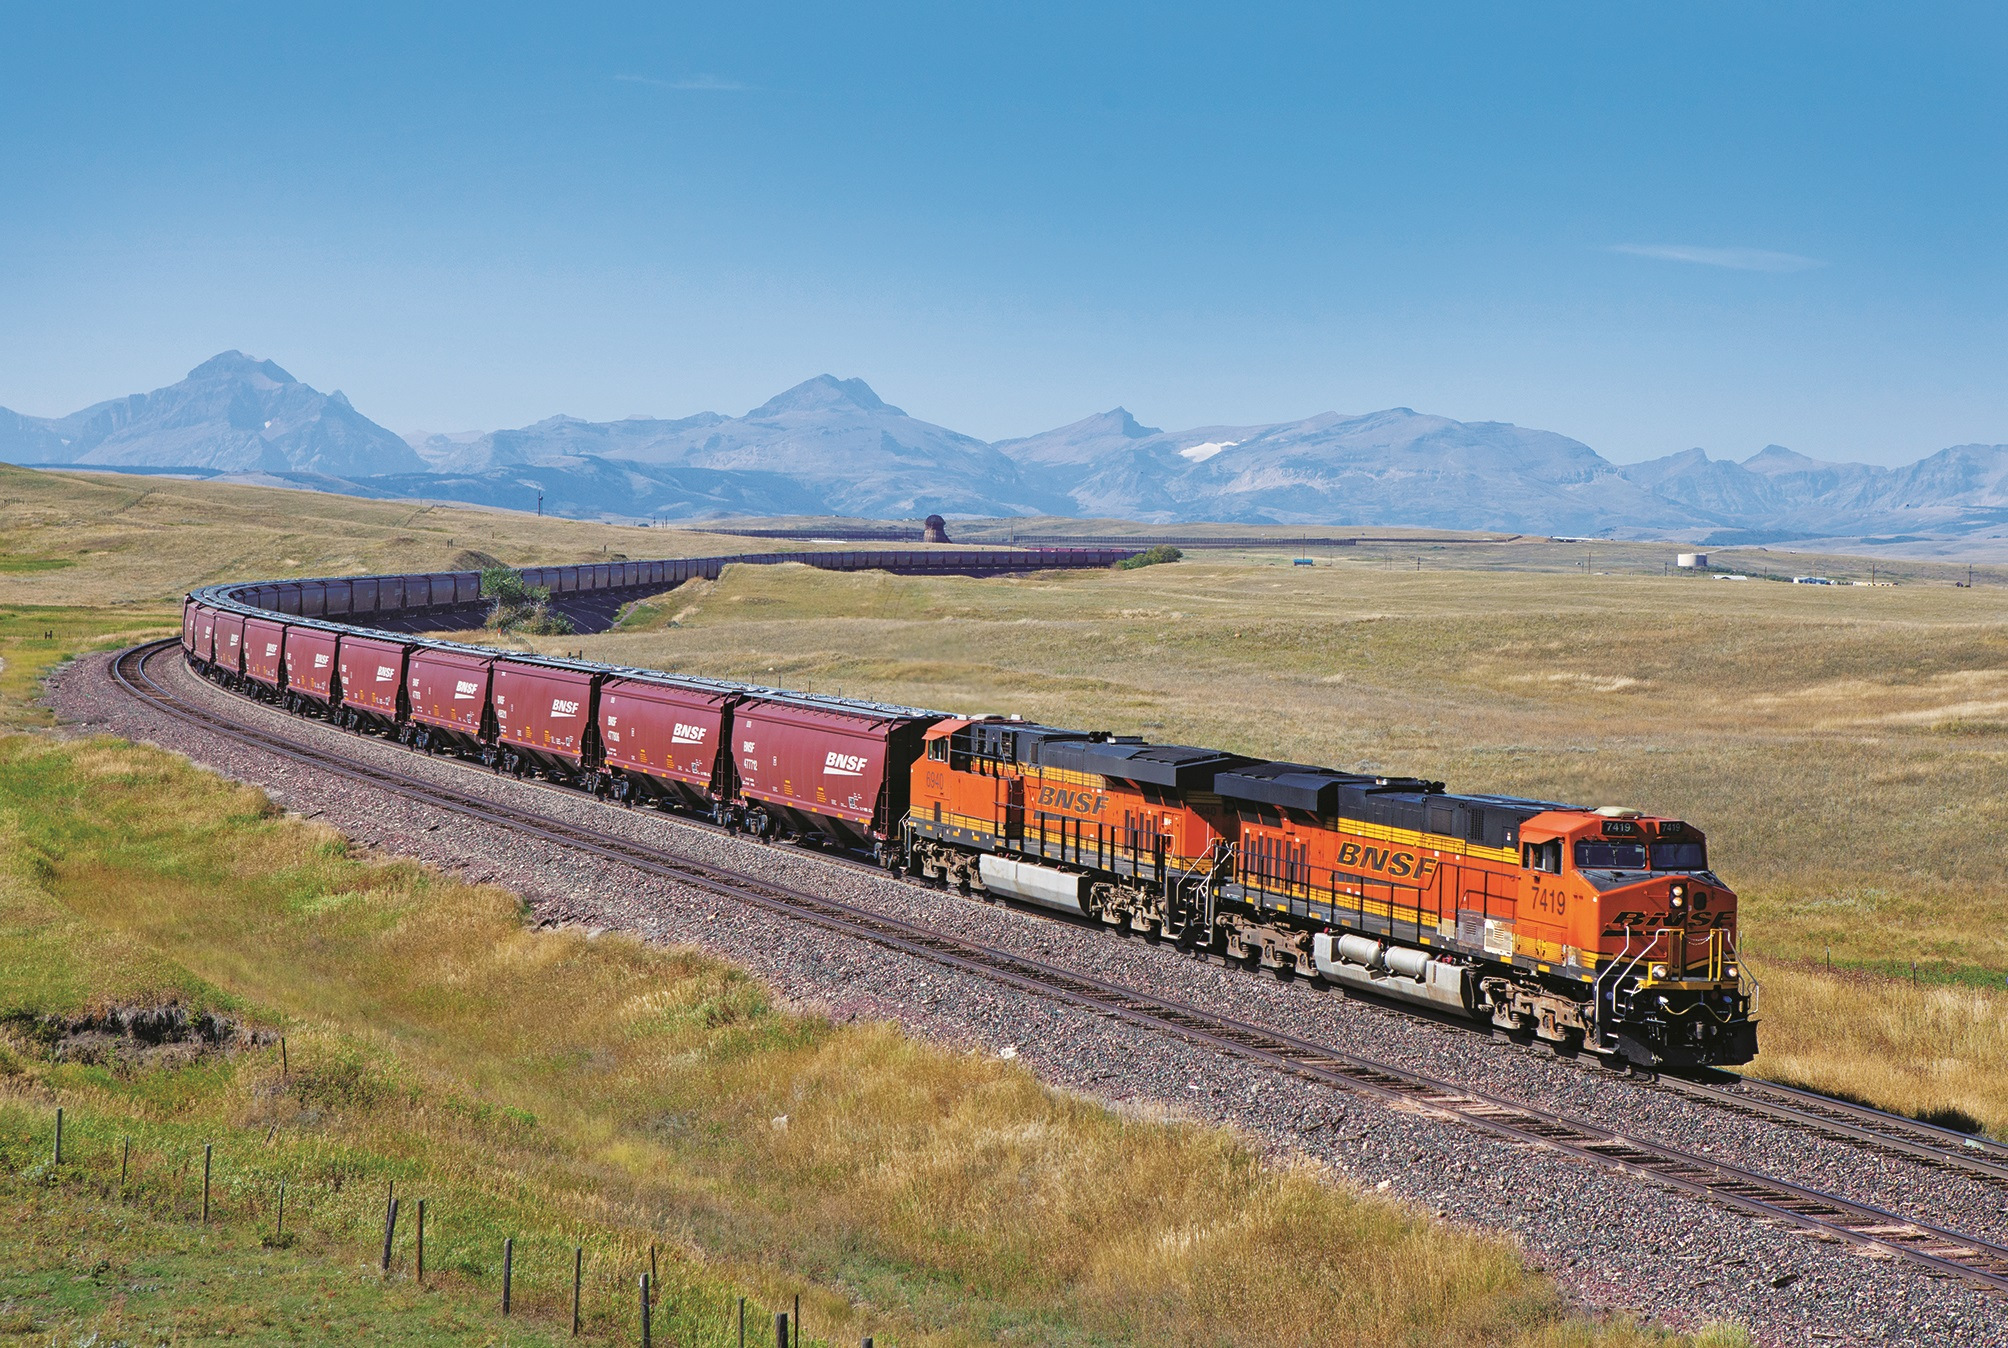 Photos of trains in stunning western US settings | CNN Travel